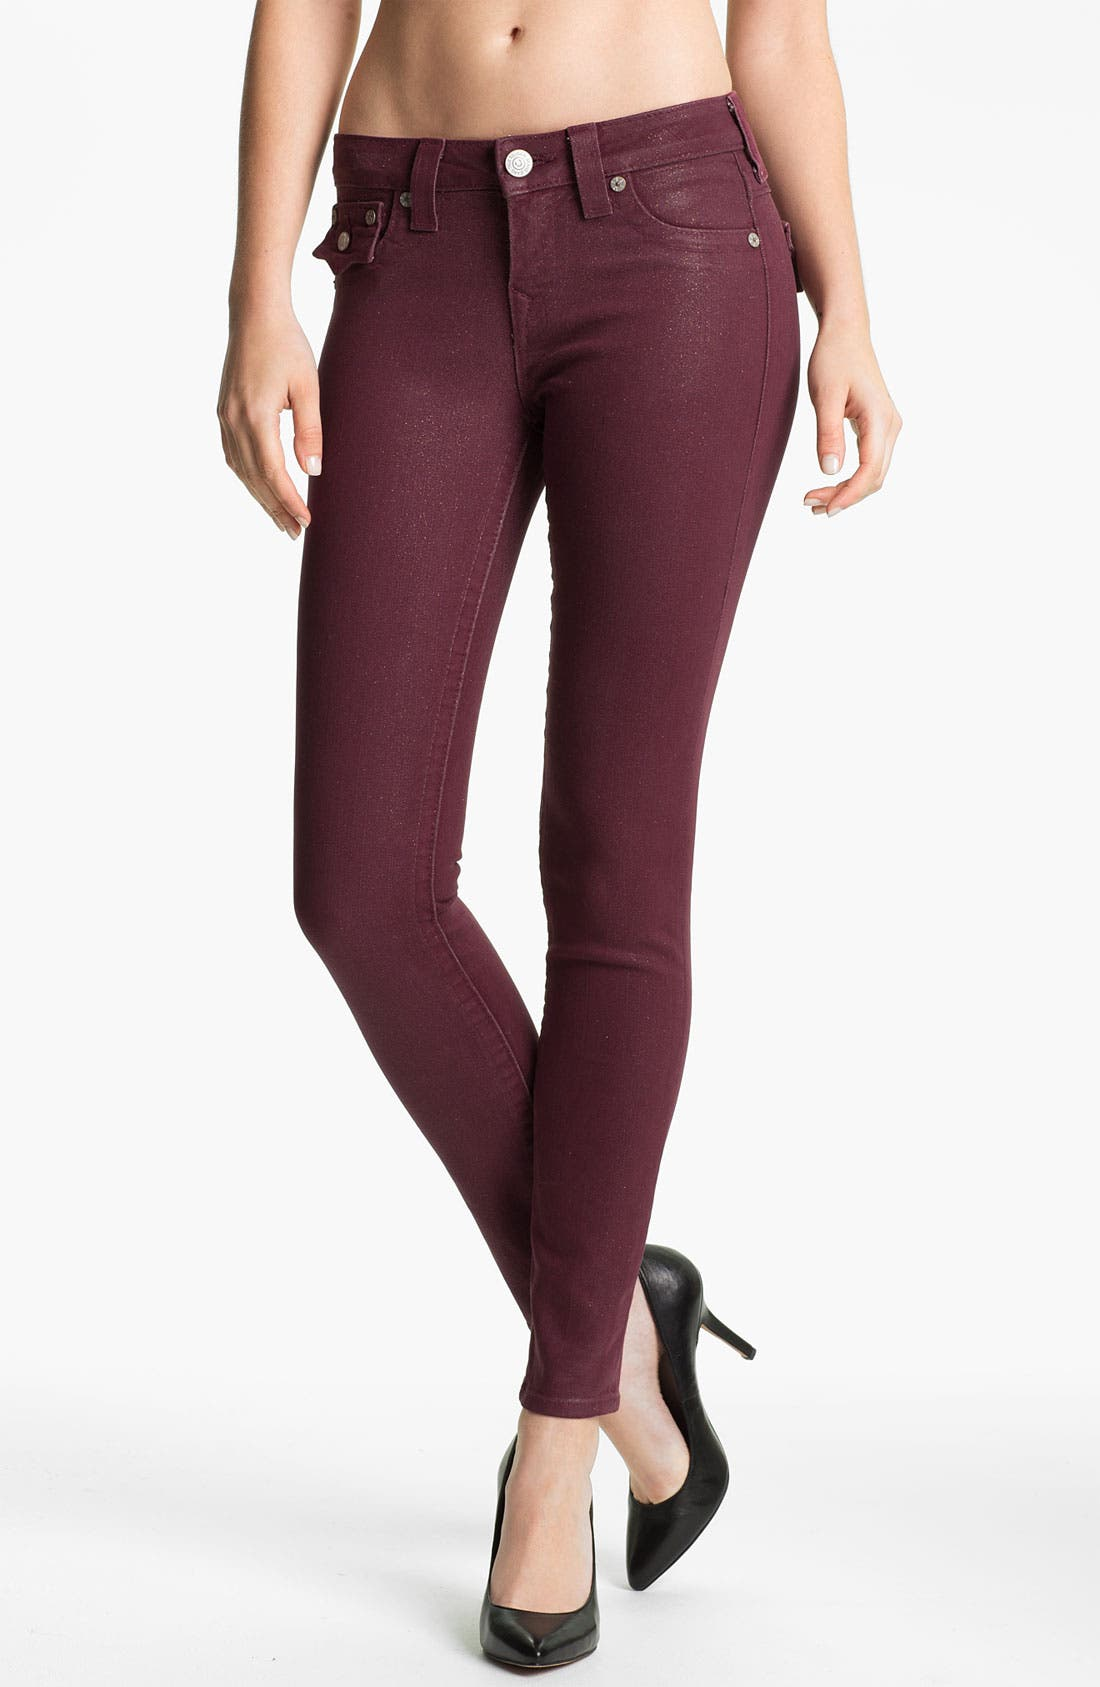 Alternate Image 1 Selected - True Religion Brand Jeans 'Serena' Coated Skinny Leg Jeans (Maroon)